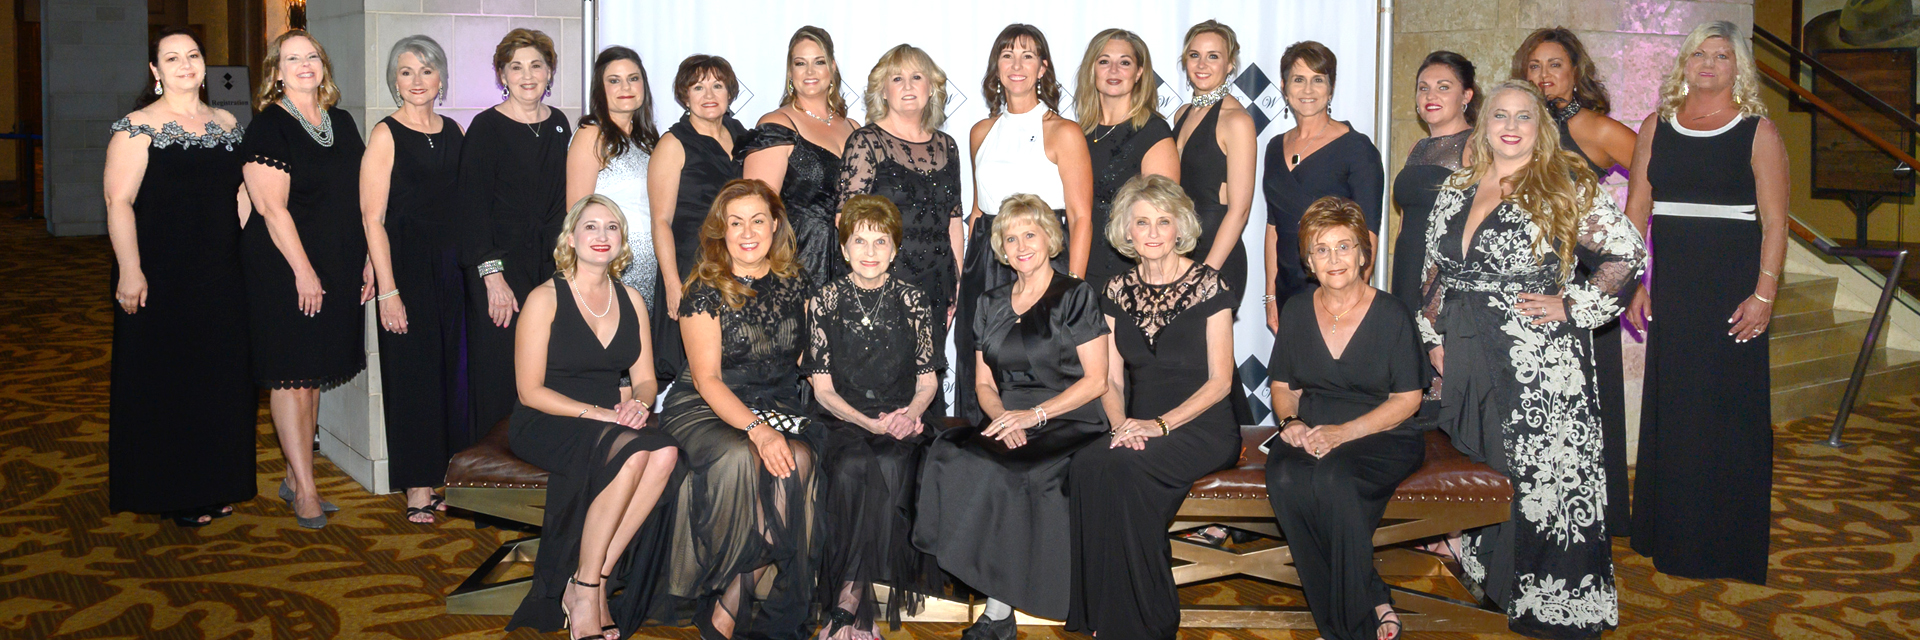 Black and White Gala Committee 2019